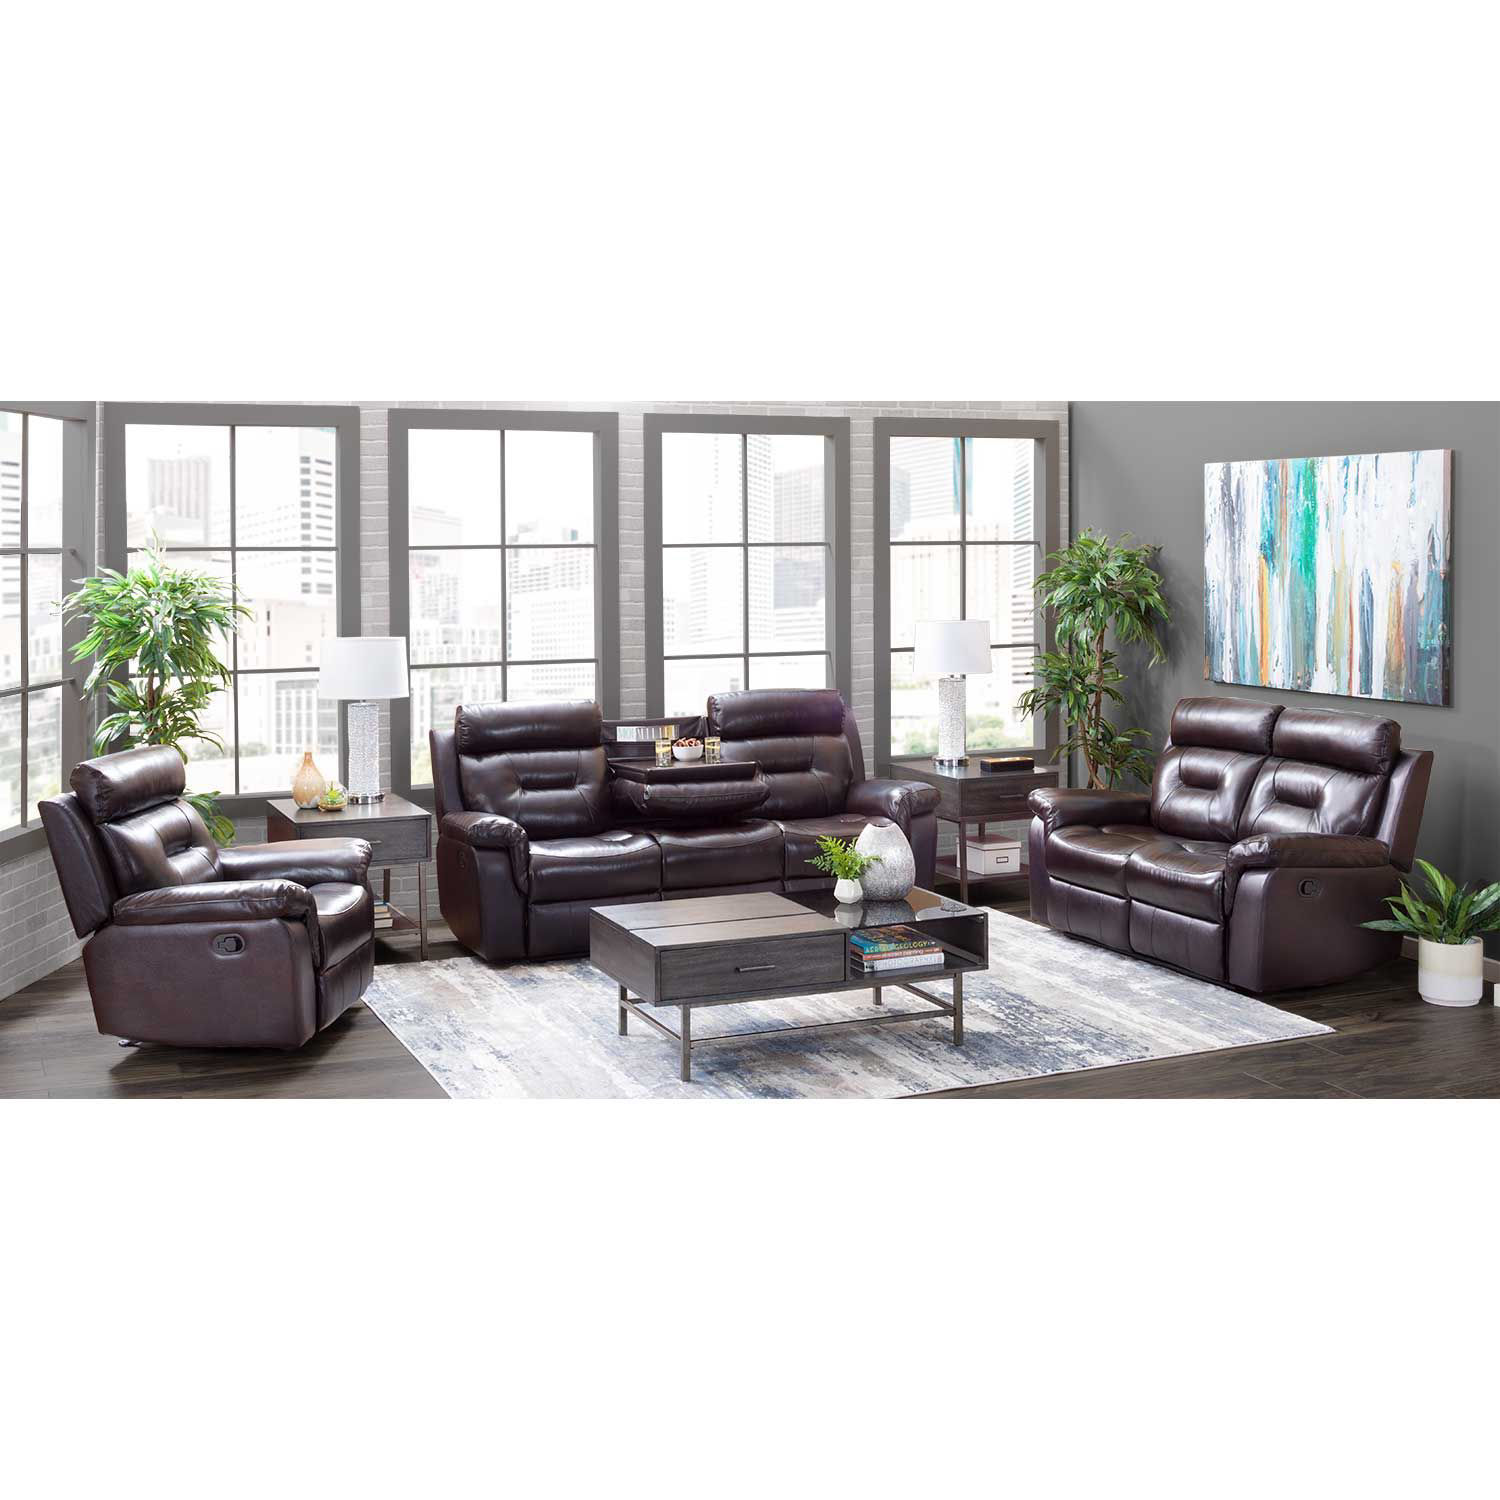 Picture of Watson Brown Leather Reclining Sofa with Drop Down Table